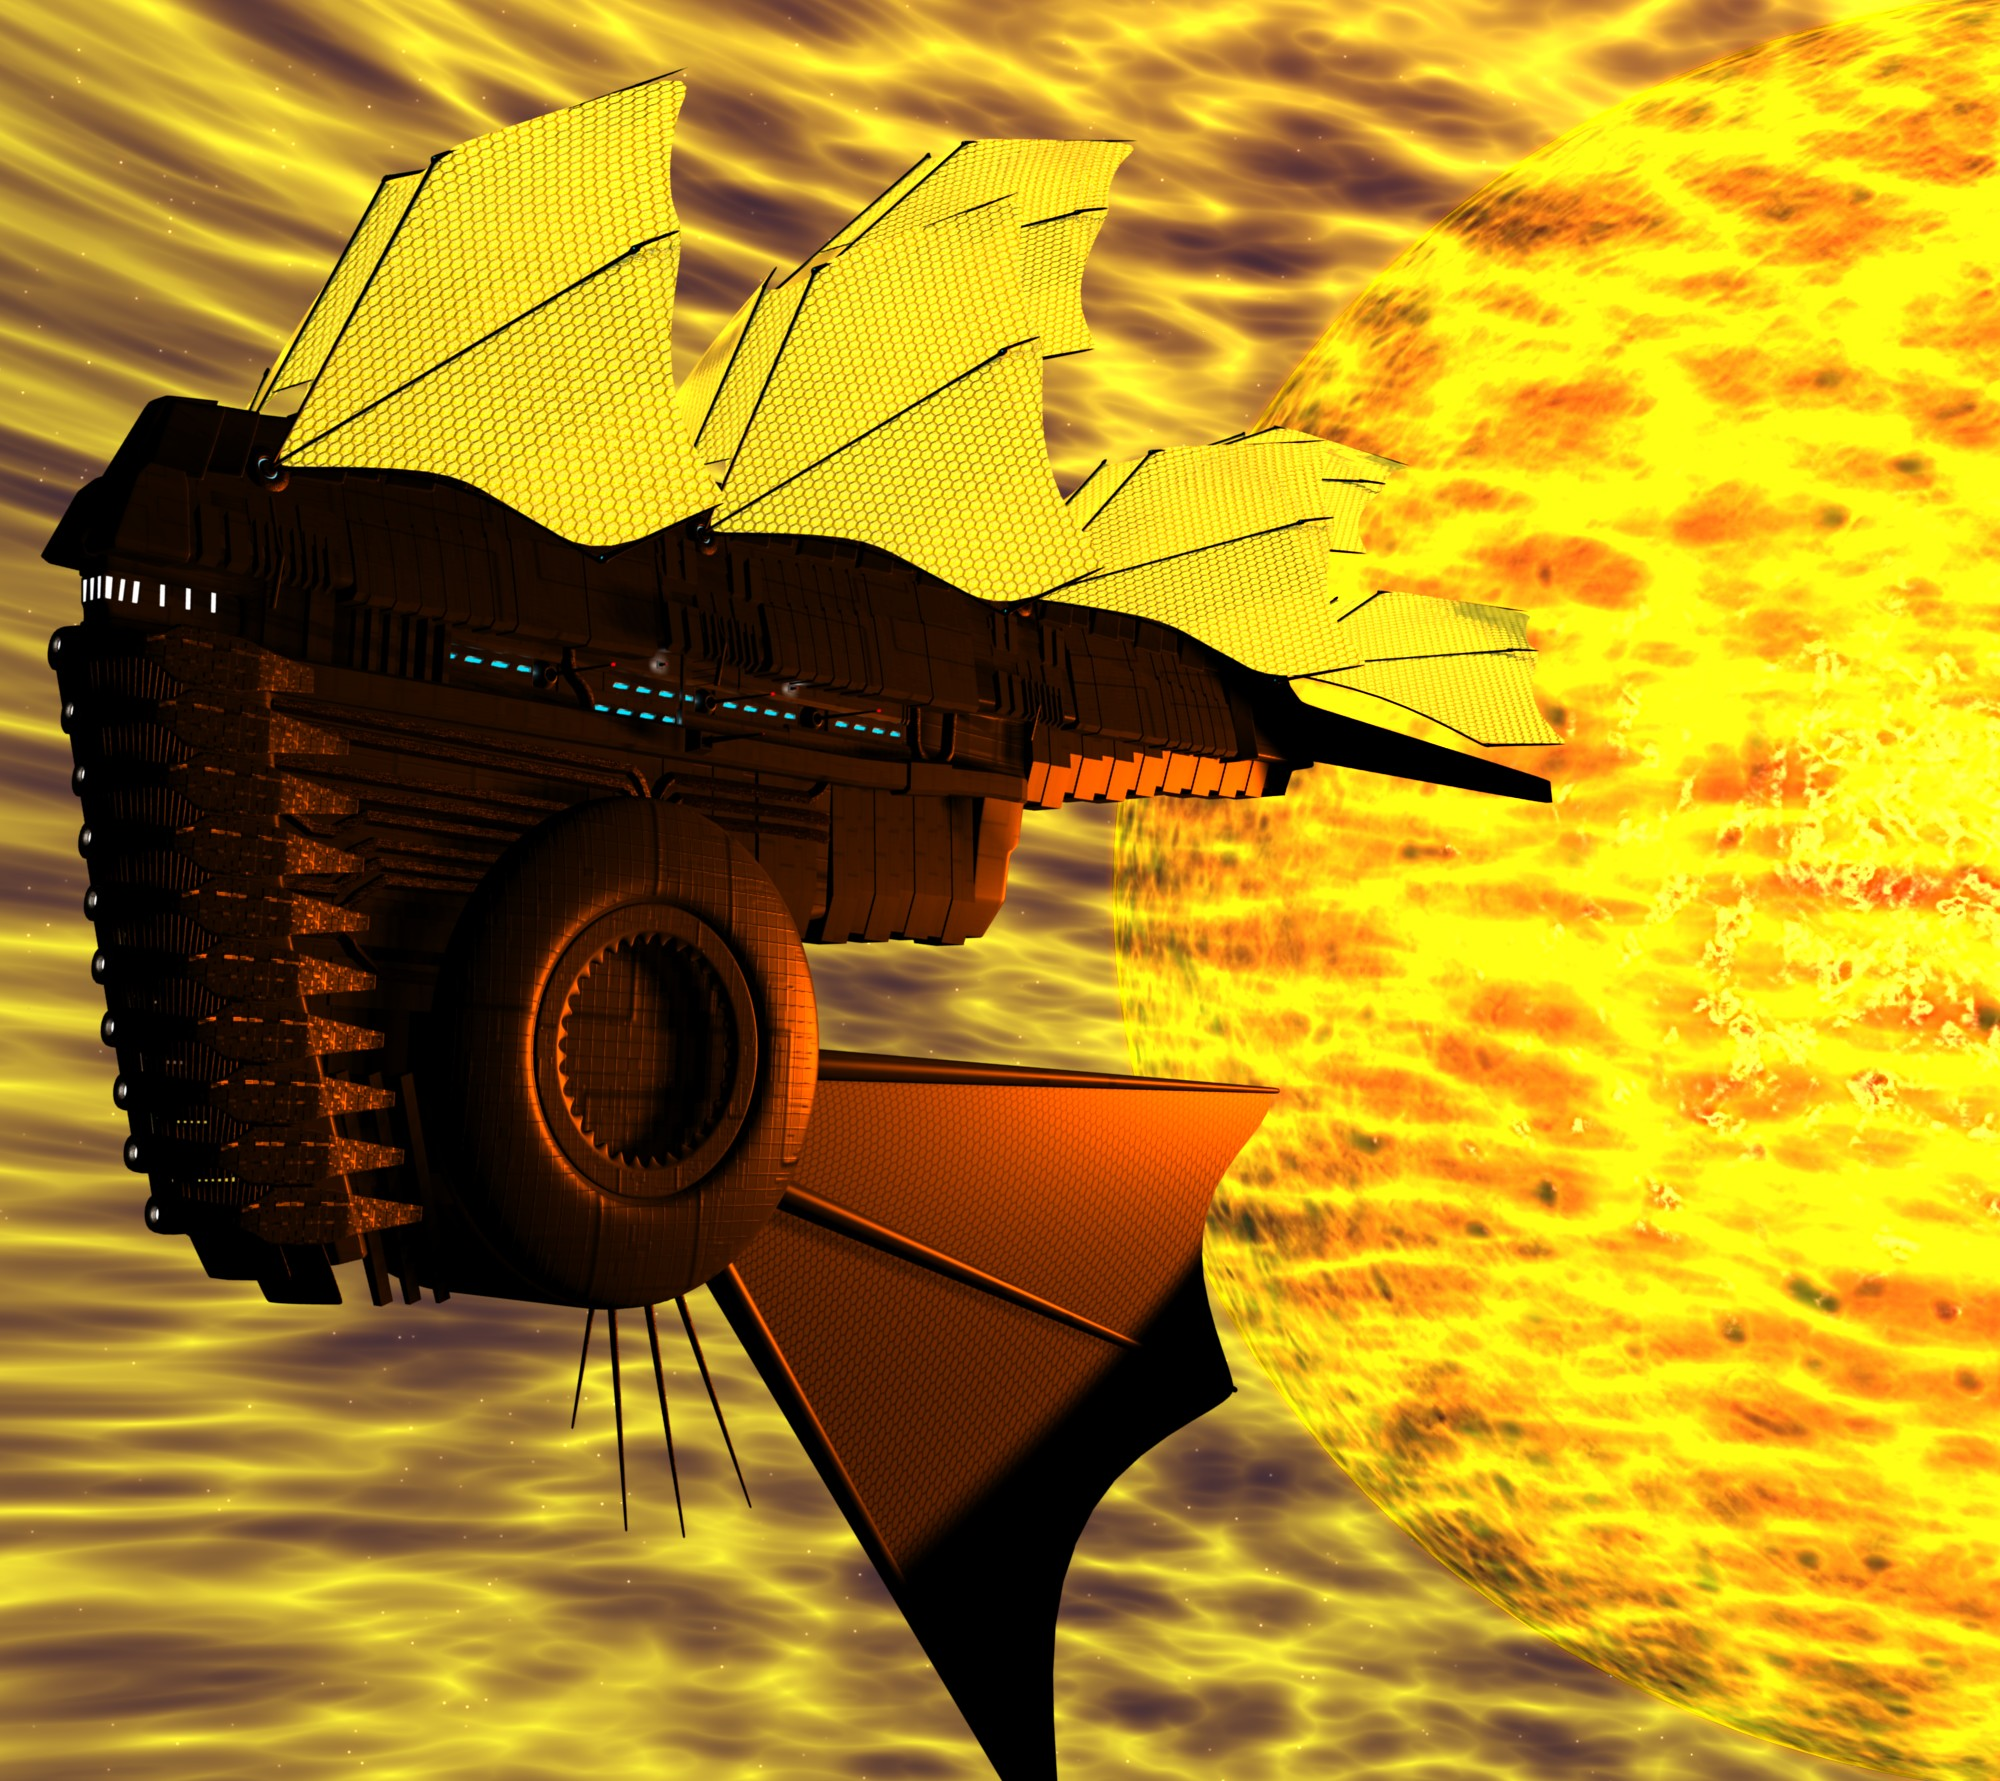 Solar sails by theolly